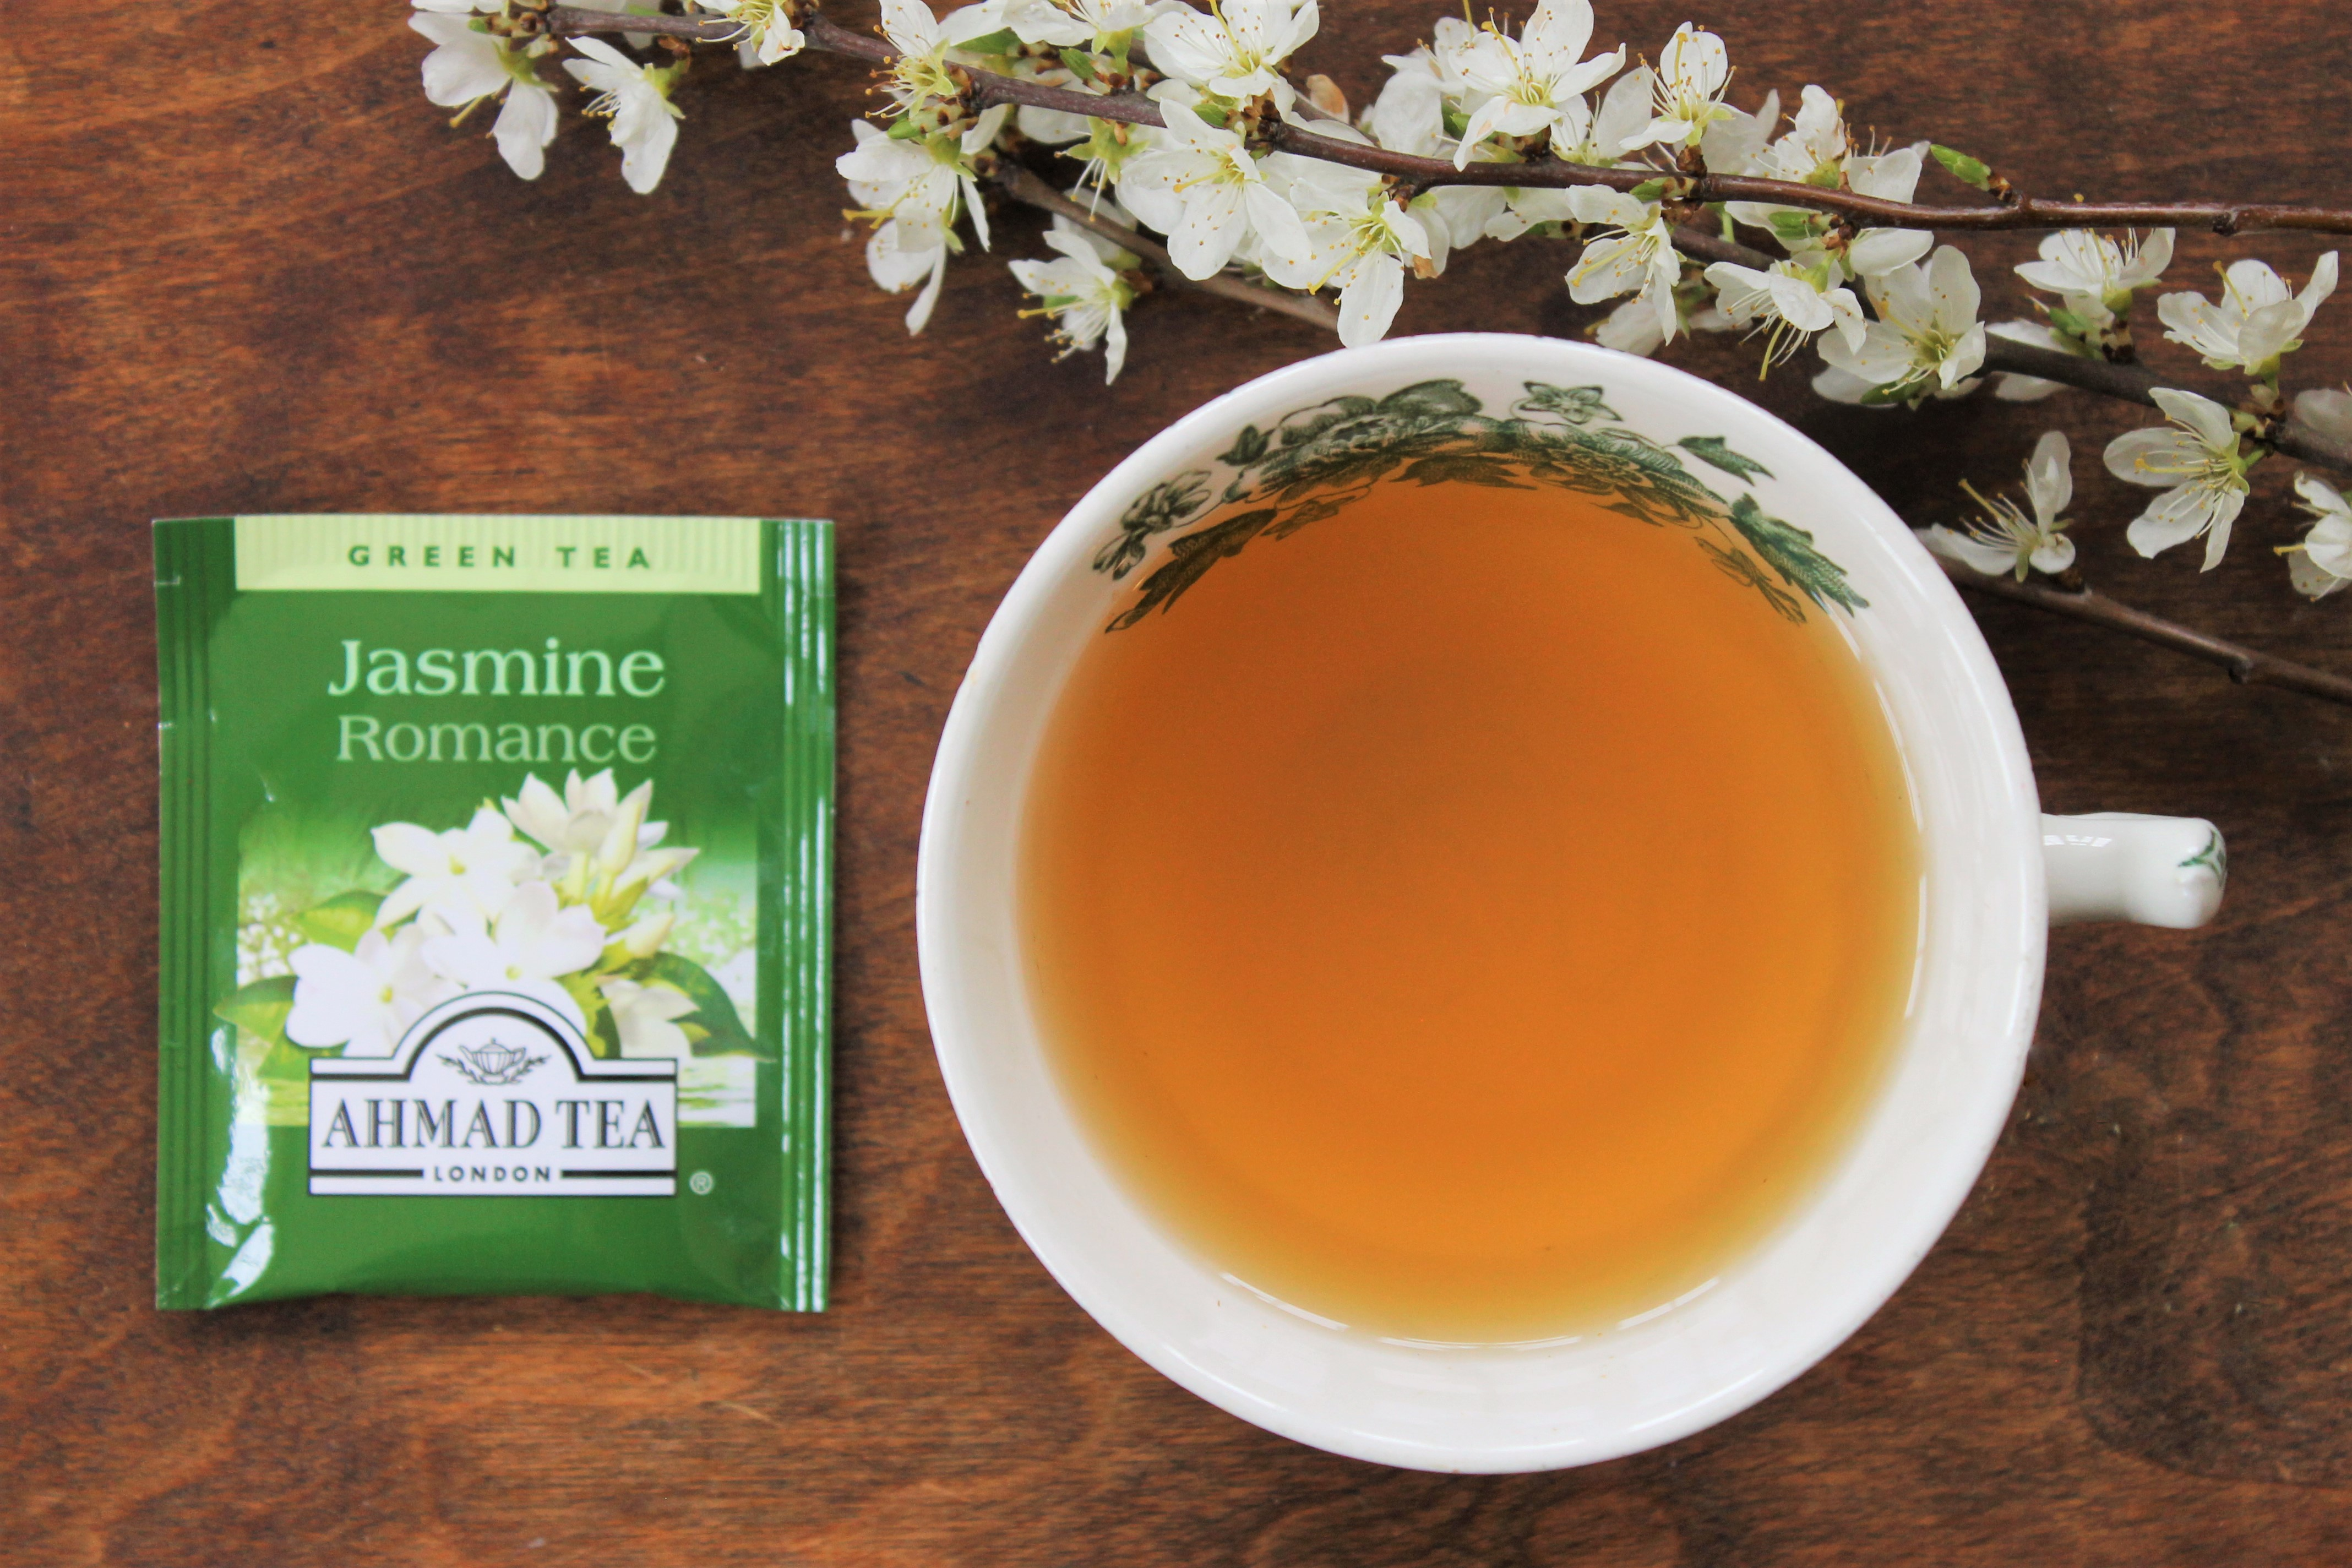 Ahmad Tea Jasmine Romance Tea Review